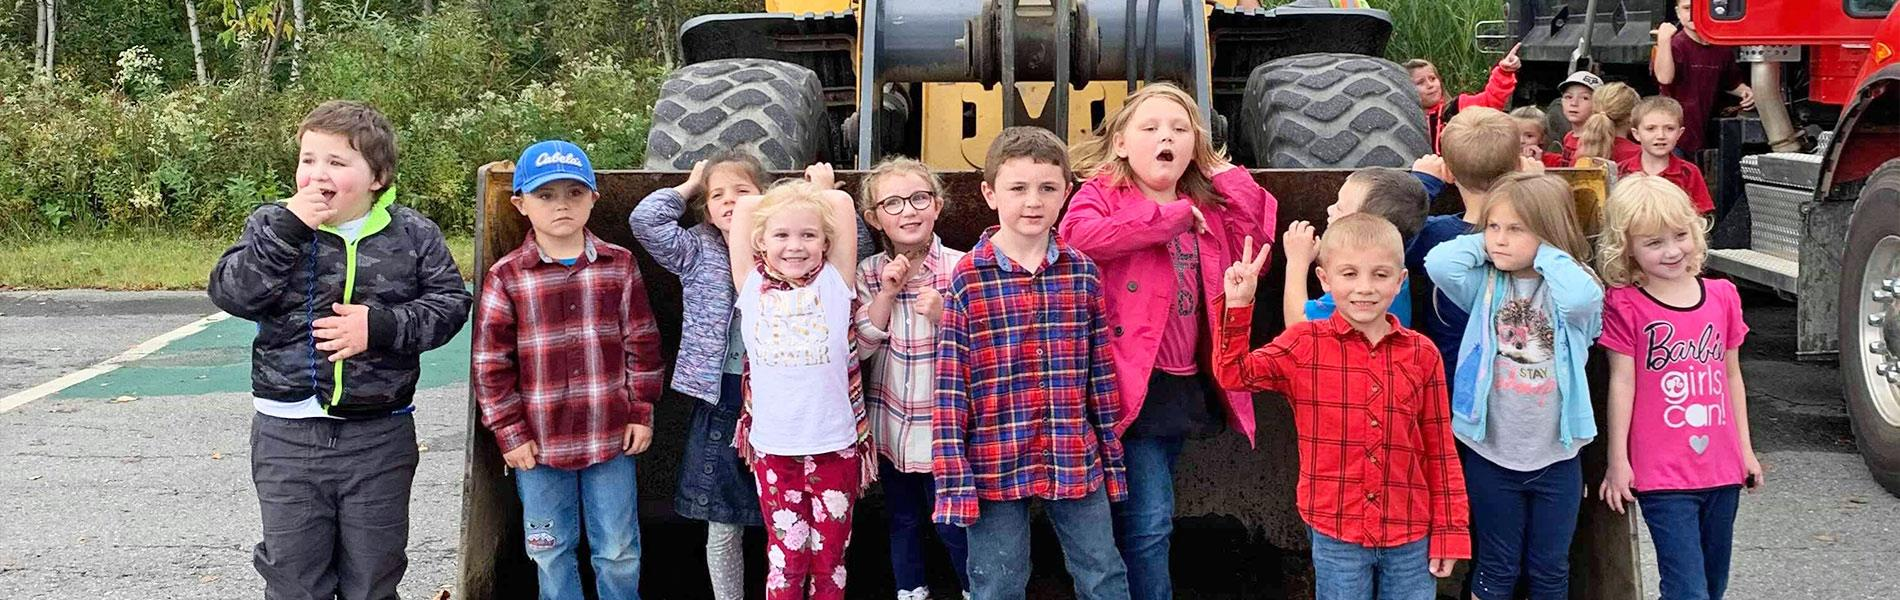 Colebrook elementary students with tractor